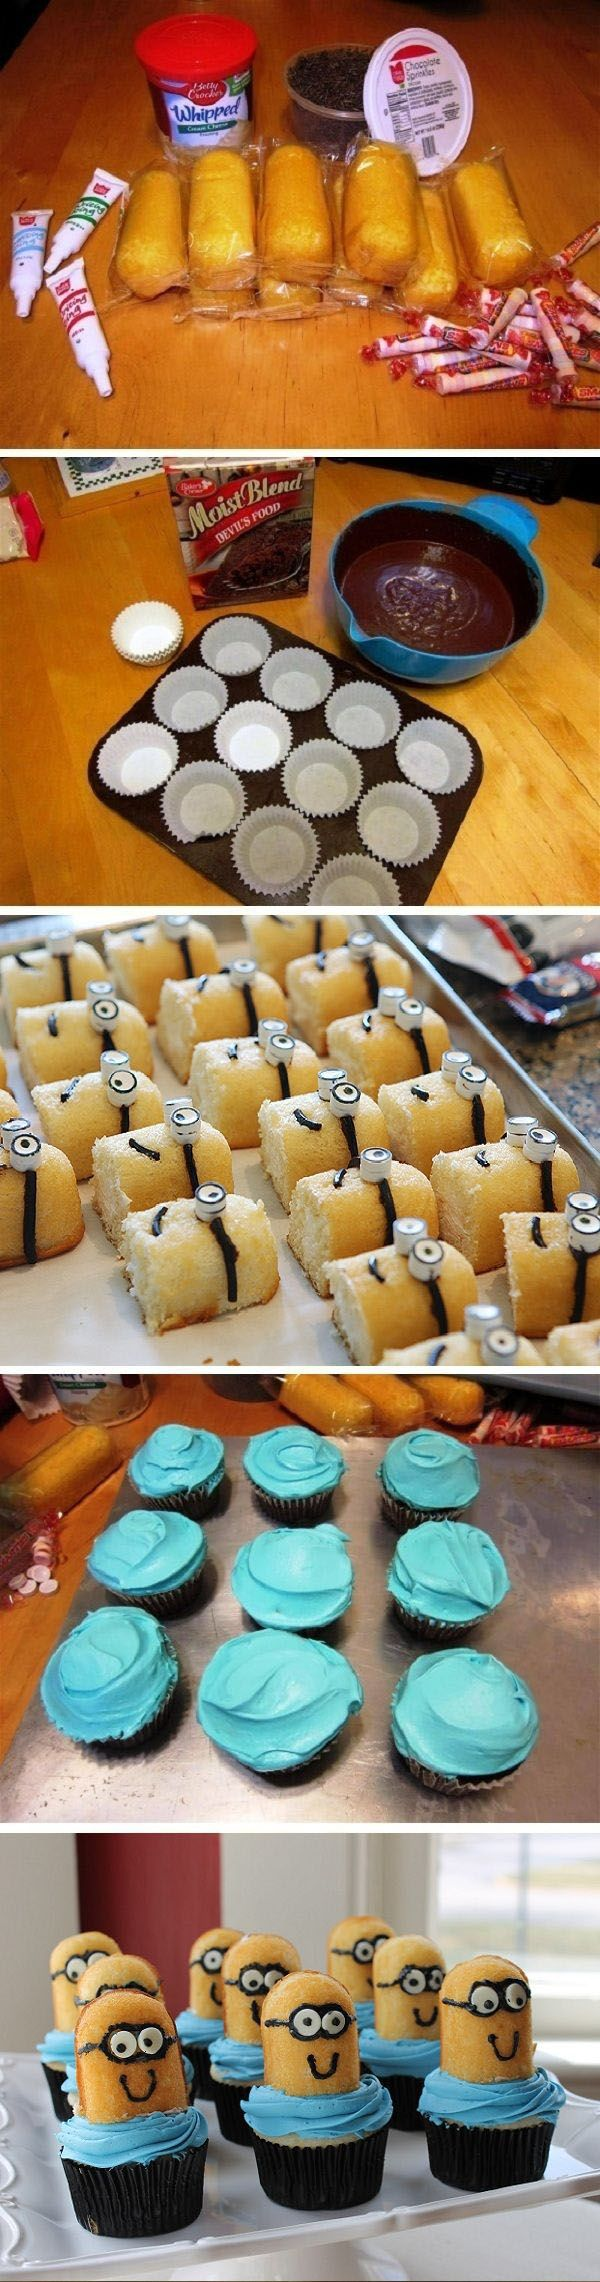 How to Make Despicable Me Minion Cupcakes Twinkie Edition - Cupcakepedia